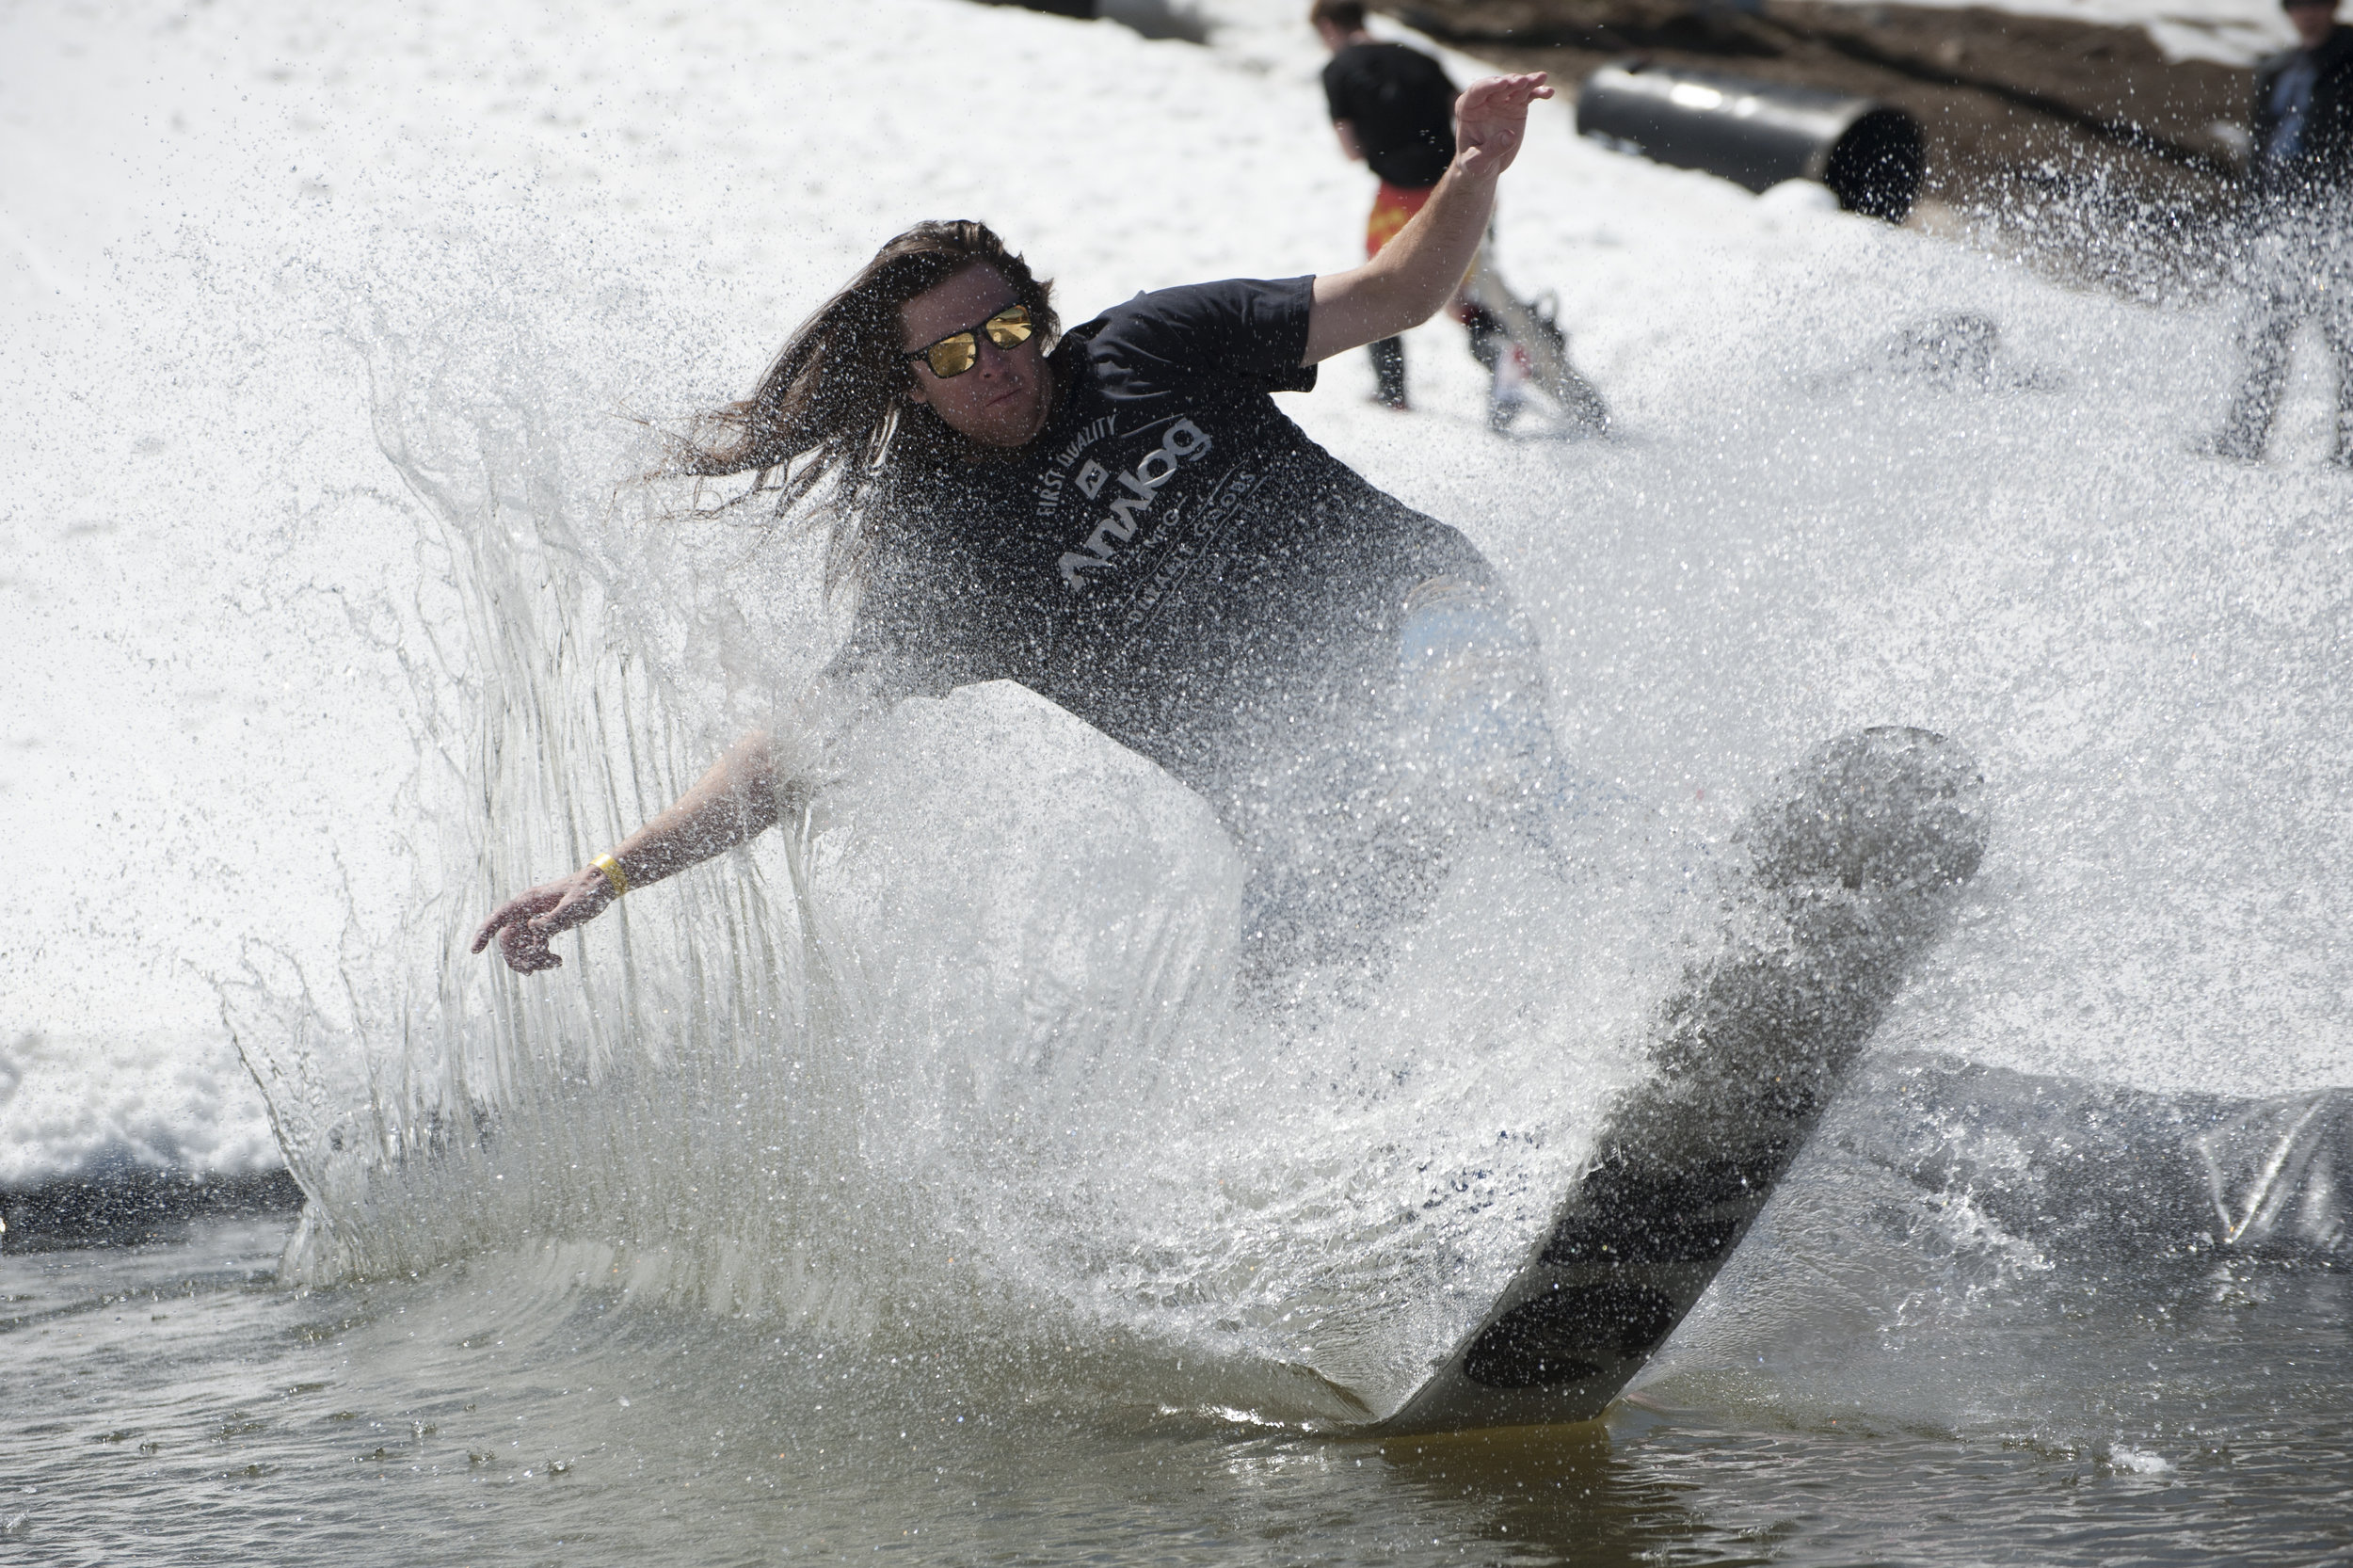 A snowboarder skids across the water during the pond skimming event at Bear Break March 30, 2017. Bear Mountain's annual spring break event hosts a variety of competitions throughout the week.